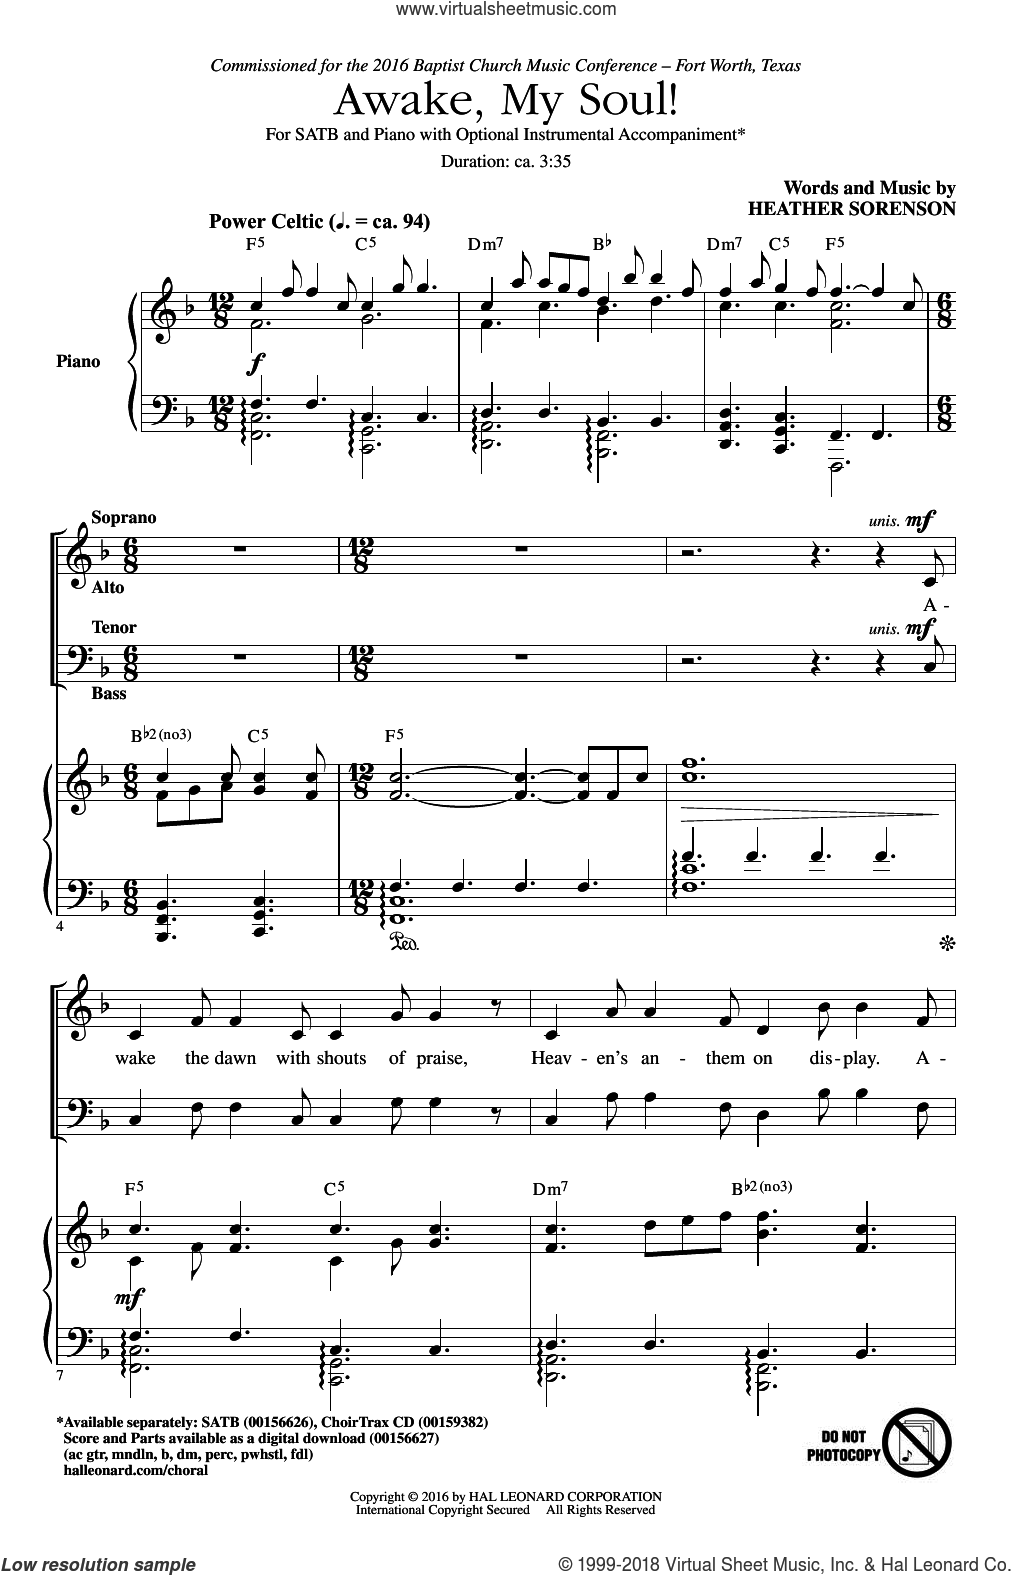 Awake, My Soul! sheet music for choir and piano (SATB) by Heather Sorenson